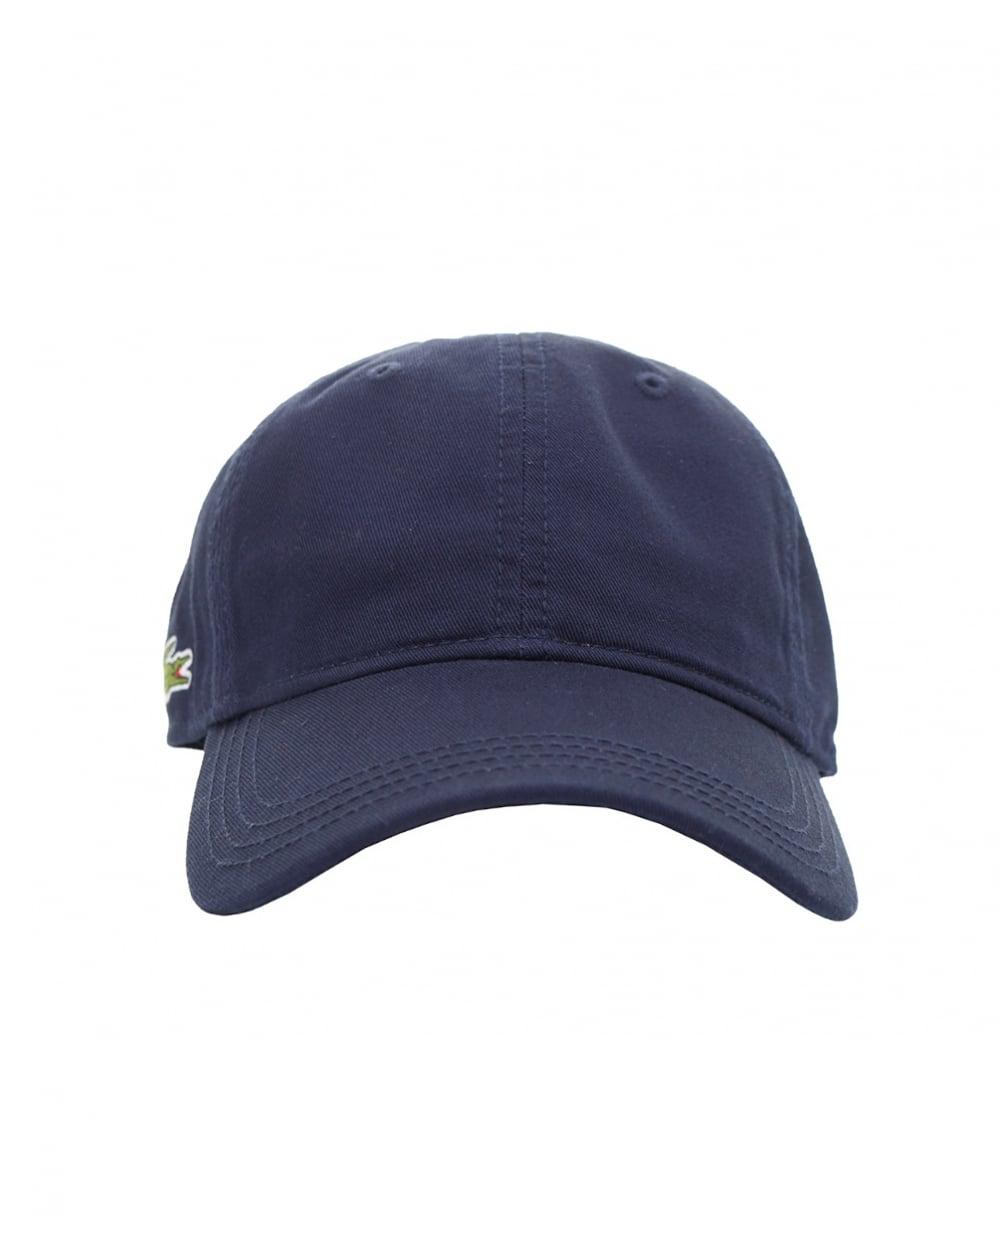 7555eb4be36 Lacoste L!ive Side Logo Cap in Blue for Men - Lyst